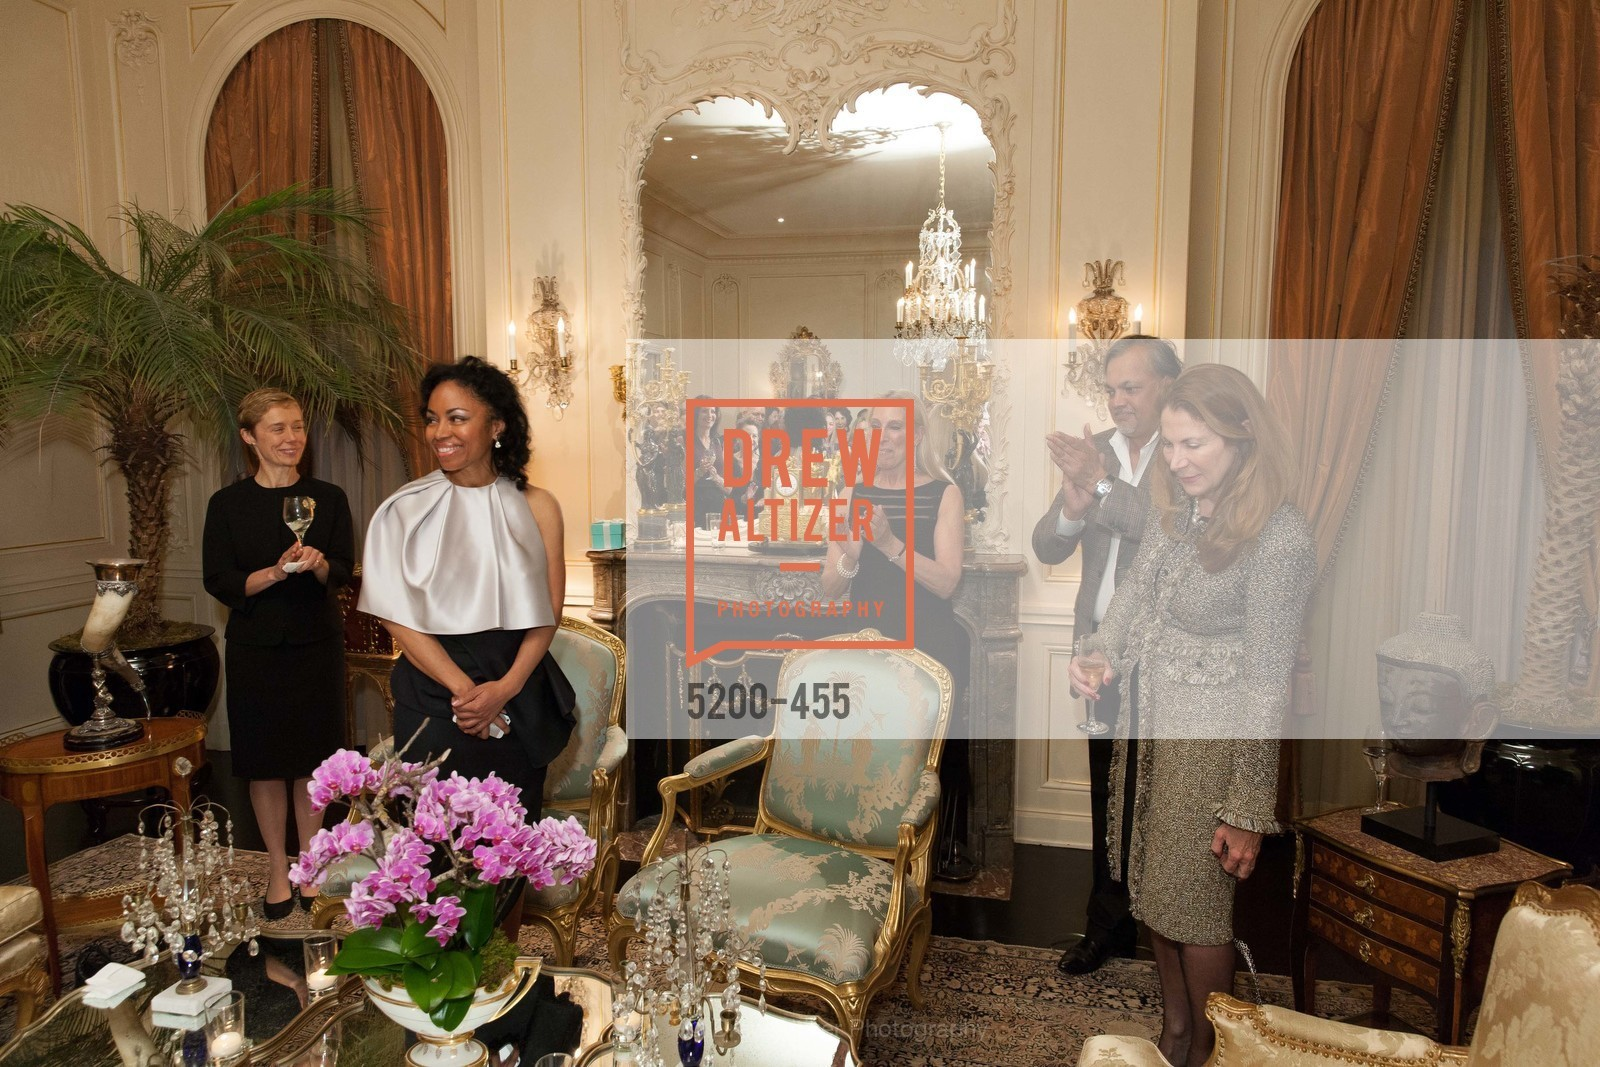 Larissa Roesch, Tanya Powell, Betsy Linder, Asim Abdullah, Patricia Ferrin Loucks, SAN FRANCISCO BALLET Grand Benefactors Reception, US. US, January 8th, 2014,Drew Altizer, Drew Altizer Photography, full-service agency, private events, San Francisco photographer, photographer california